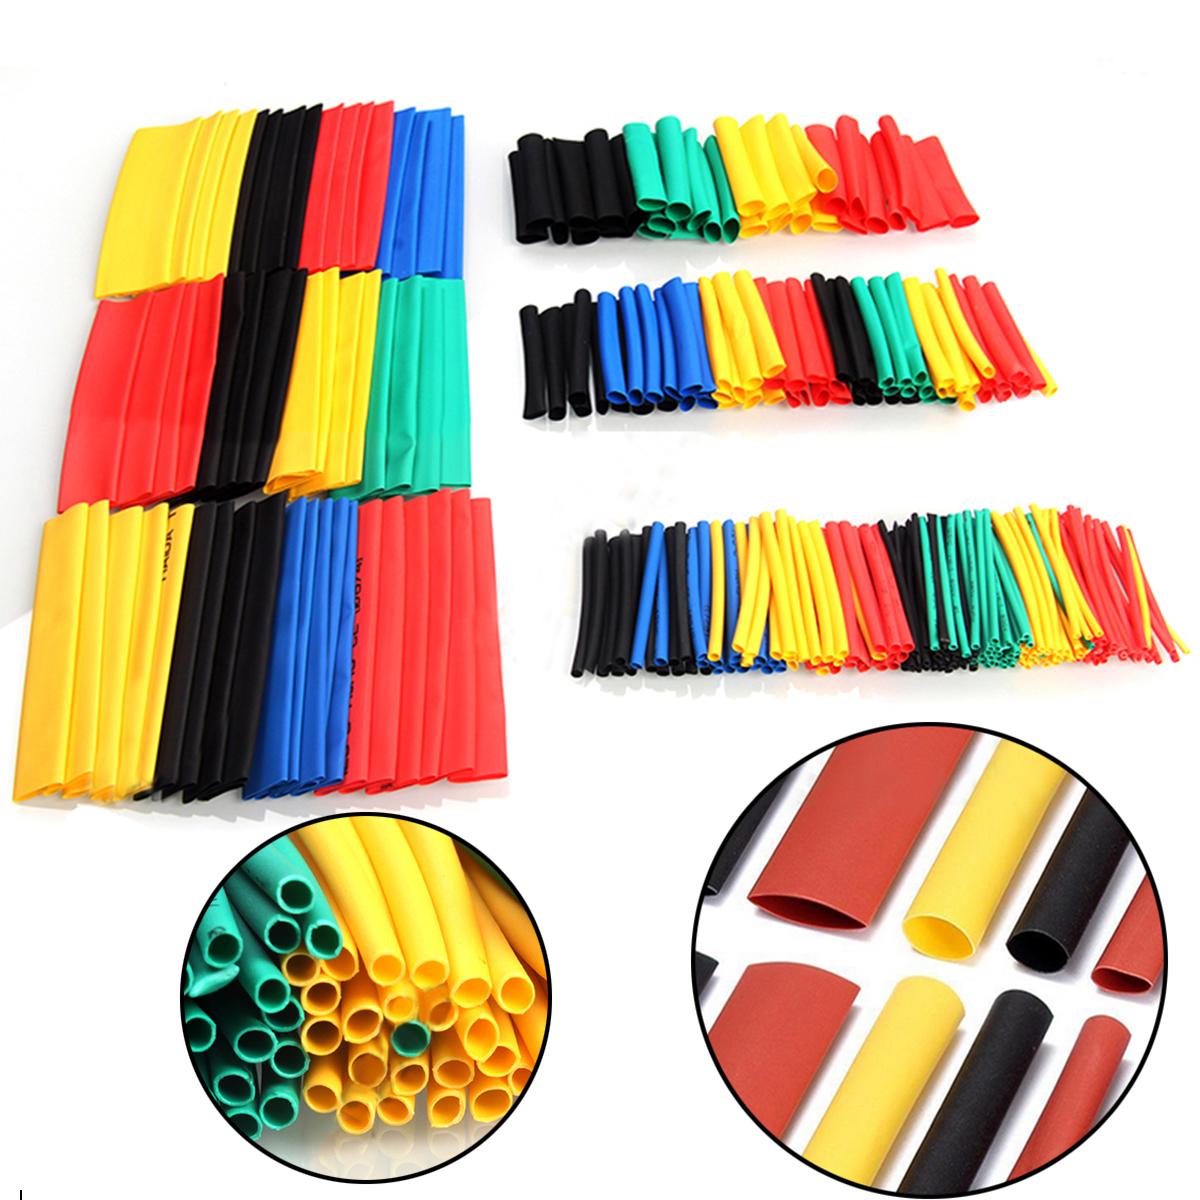 Mayitr 328pcs New Heat Shrink Tubing Set Polyolefin 2:1 Electrical Wrap Wire Cable Sleeving Kit